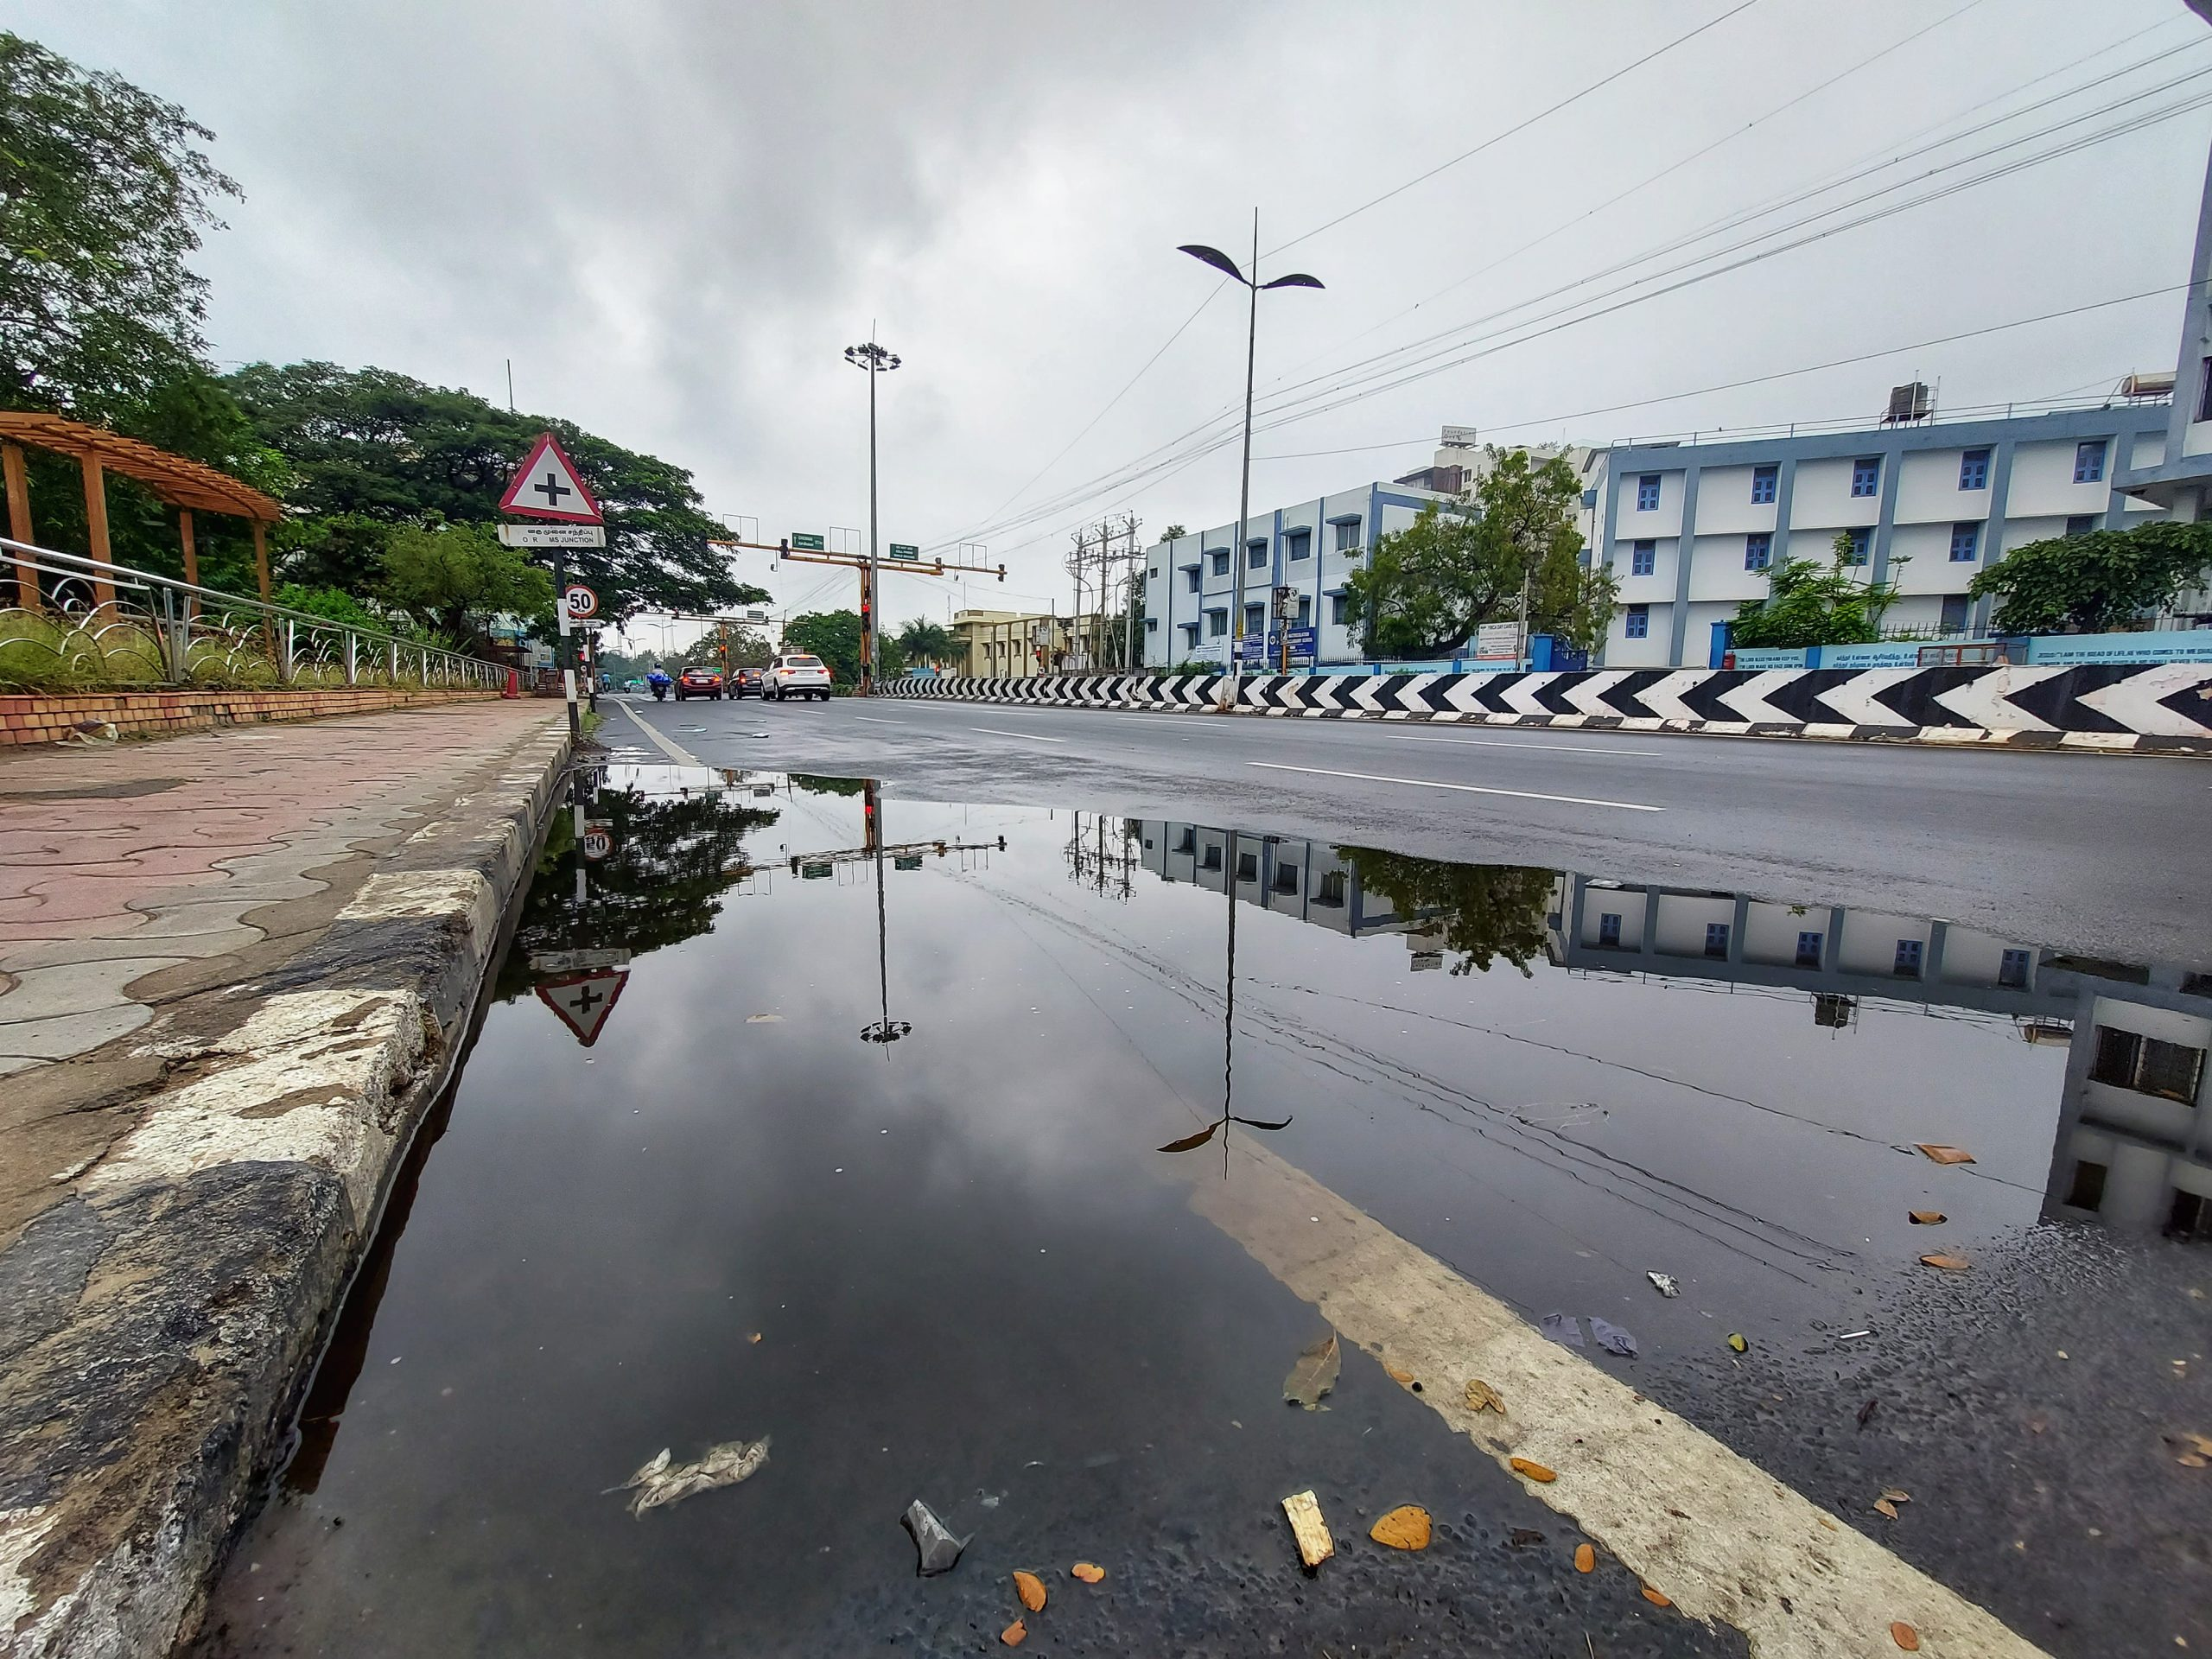 Rain water on road